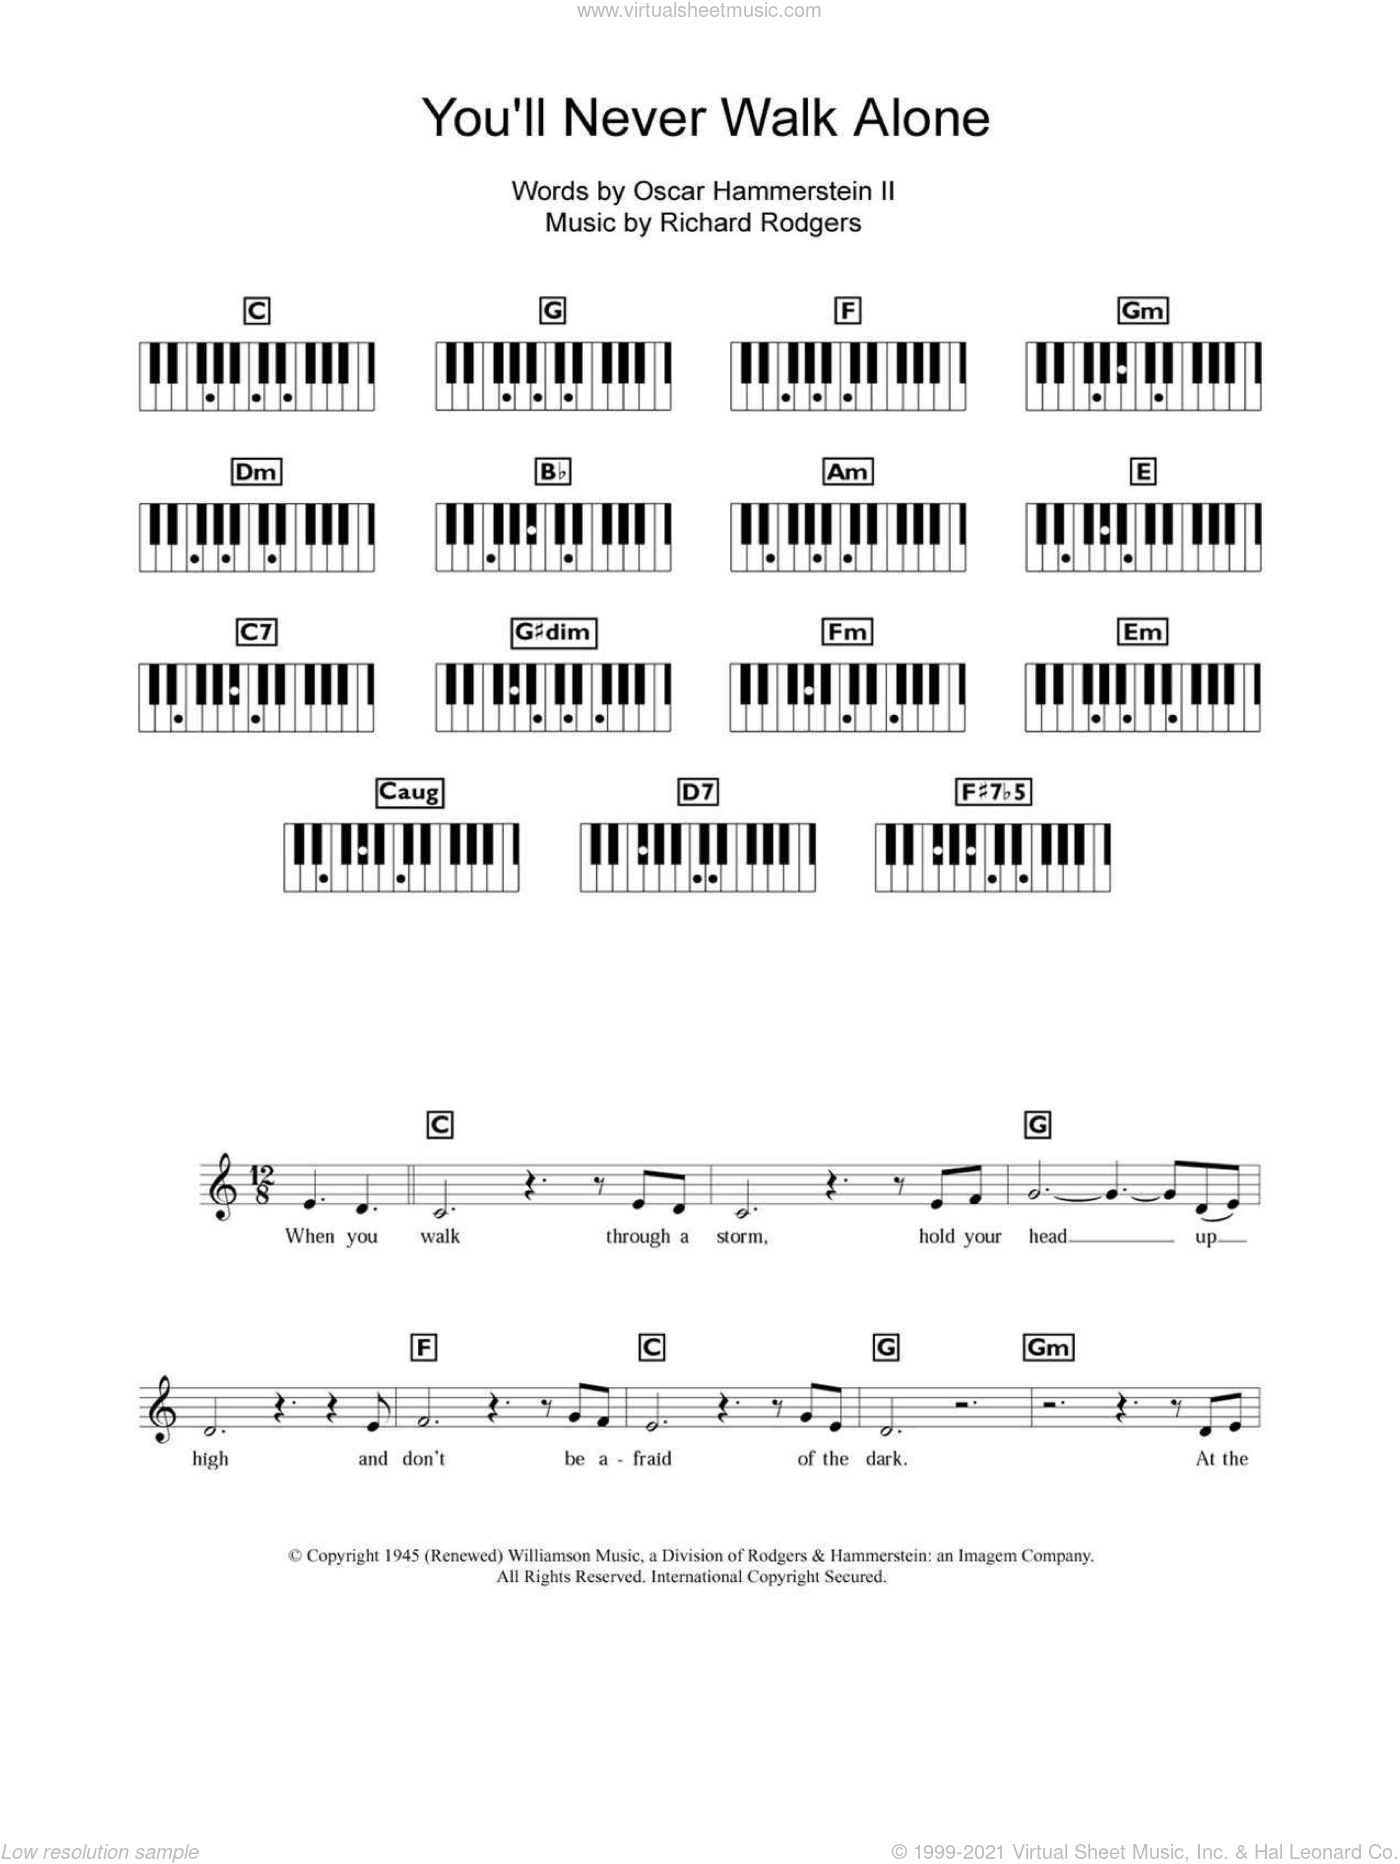 You'll Never Walk Alone sheet music for piano solo (chords, lyrics, melody) by Gerry & The Pacemakers, Rodgers & Hammerstein, Oscar II Hammerstein and Richard Rodgers. Score Image Preview.